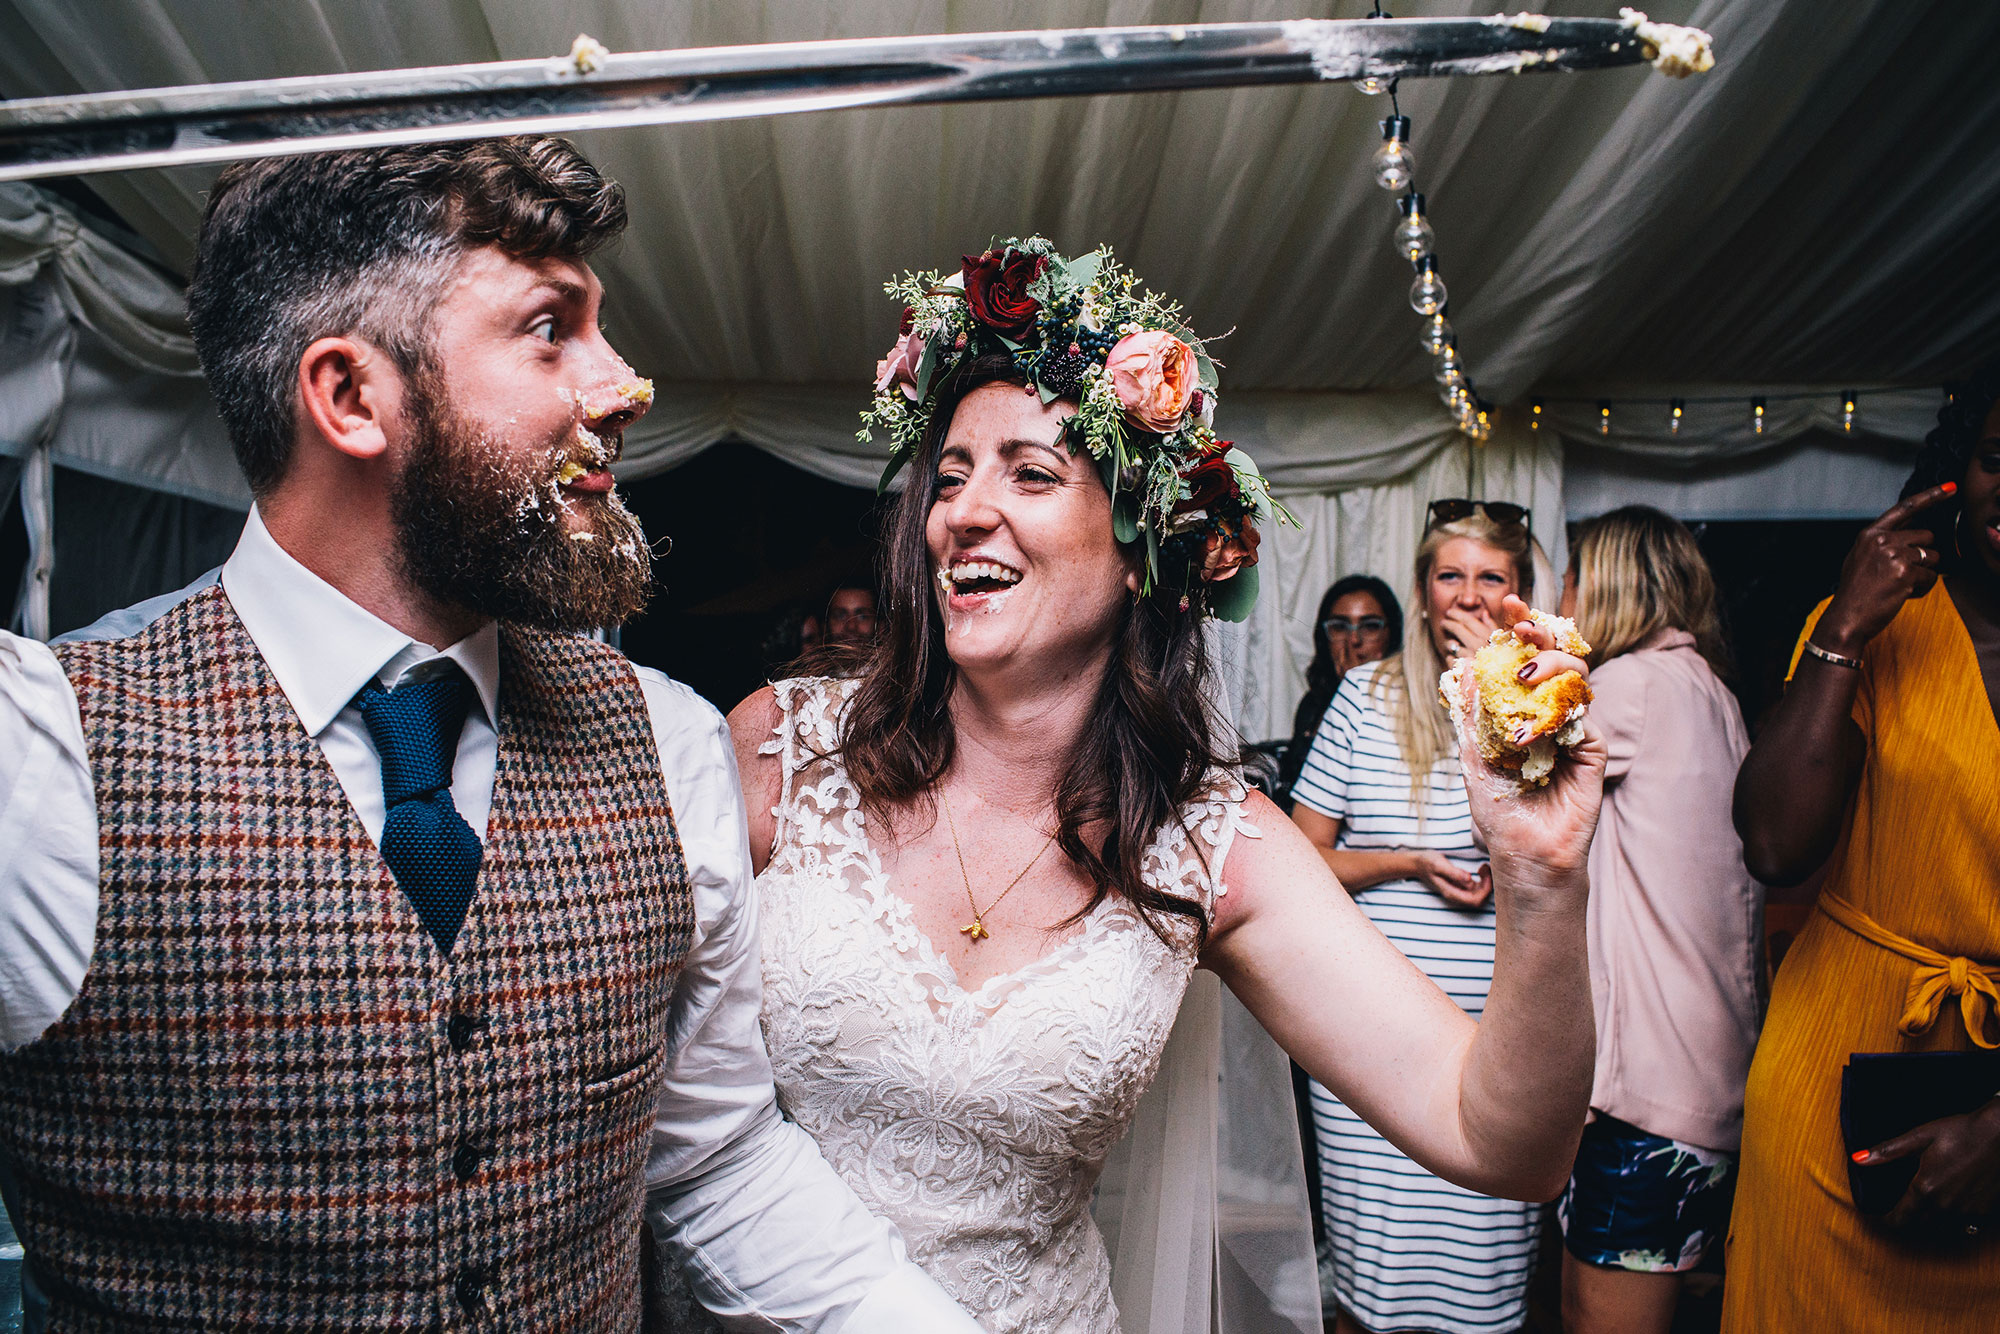 bride at owl pen manor shoving cake into grooms face which goes all over his beard